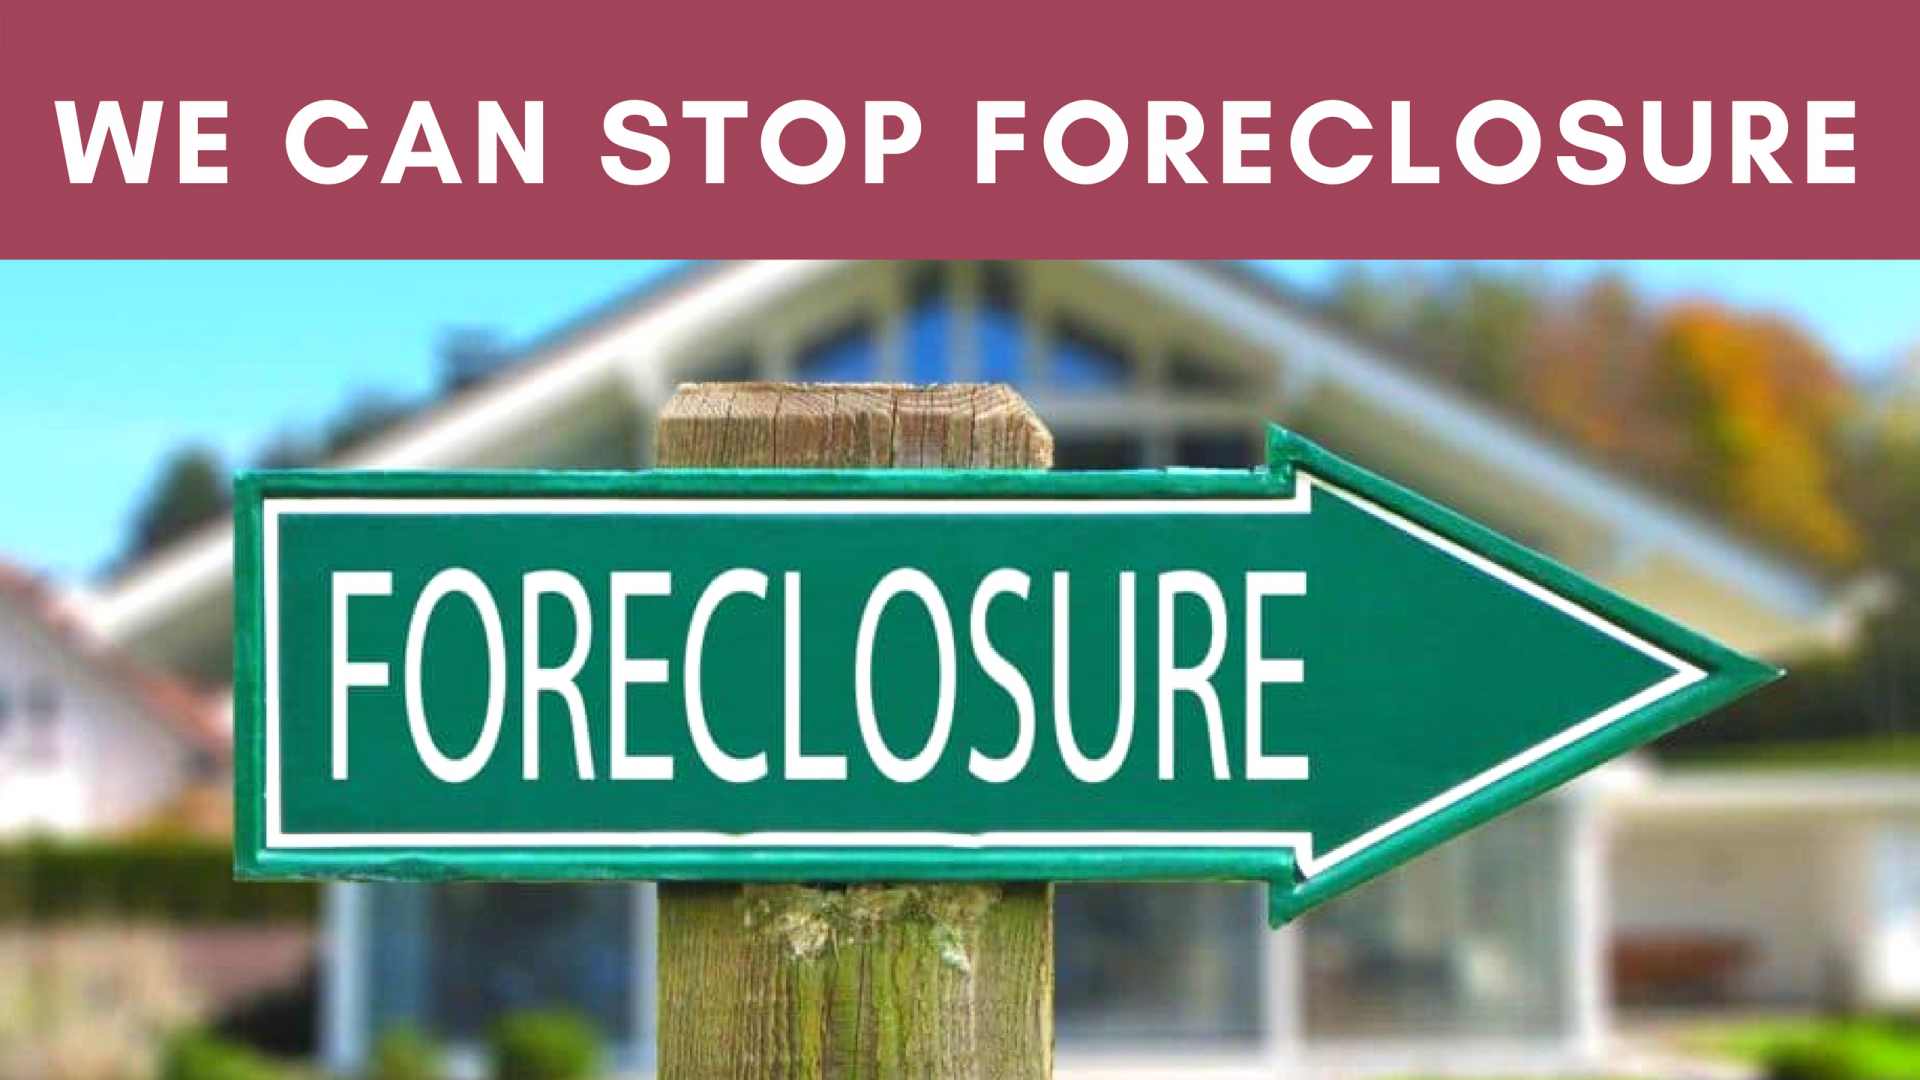 Giving My House Back To The Bank stop foreclosure we buy houses sell my house fast suwanee lawrenceville atlanta norcross duluth snellville dacula sugar hills